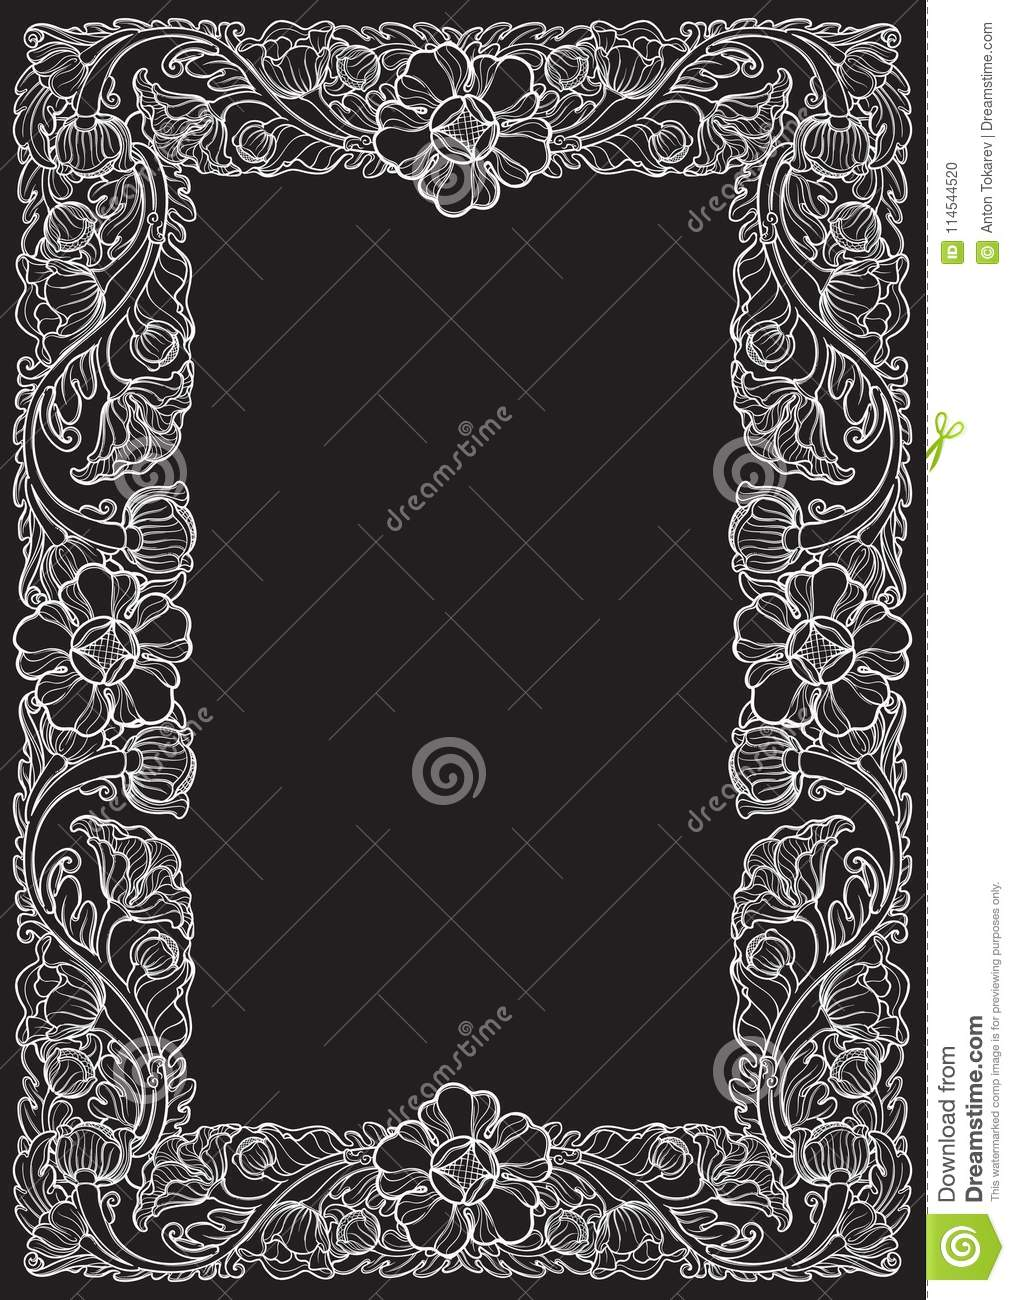 Lotus flowers arranged in intricate rectangular frame popular lotus flowers arranged in intricate rectangular frame popular decorative motif in south eastern asia izmirmasajfo